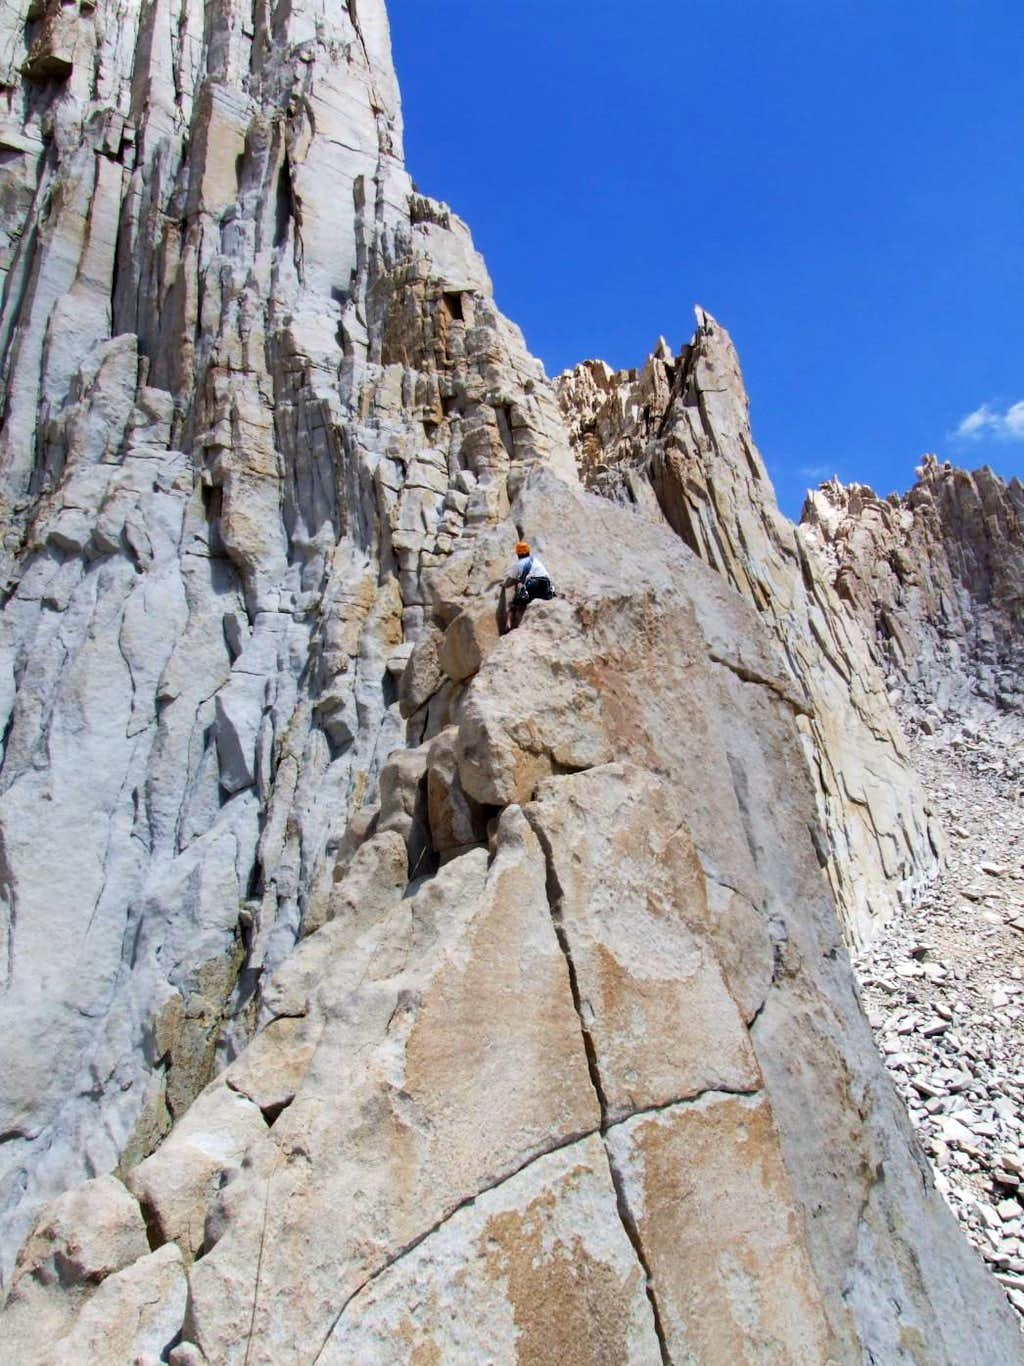 Pitch 4 of Fishhook Arete